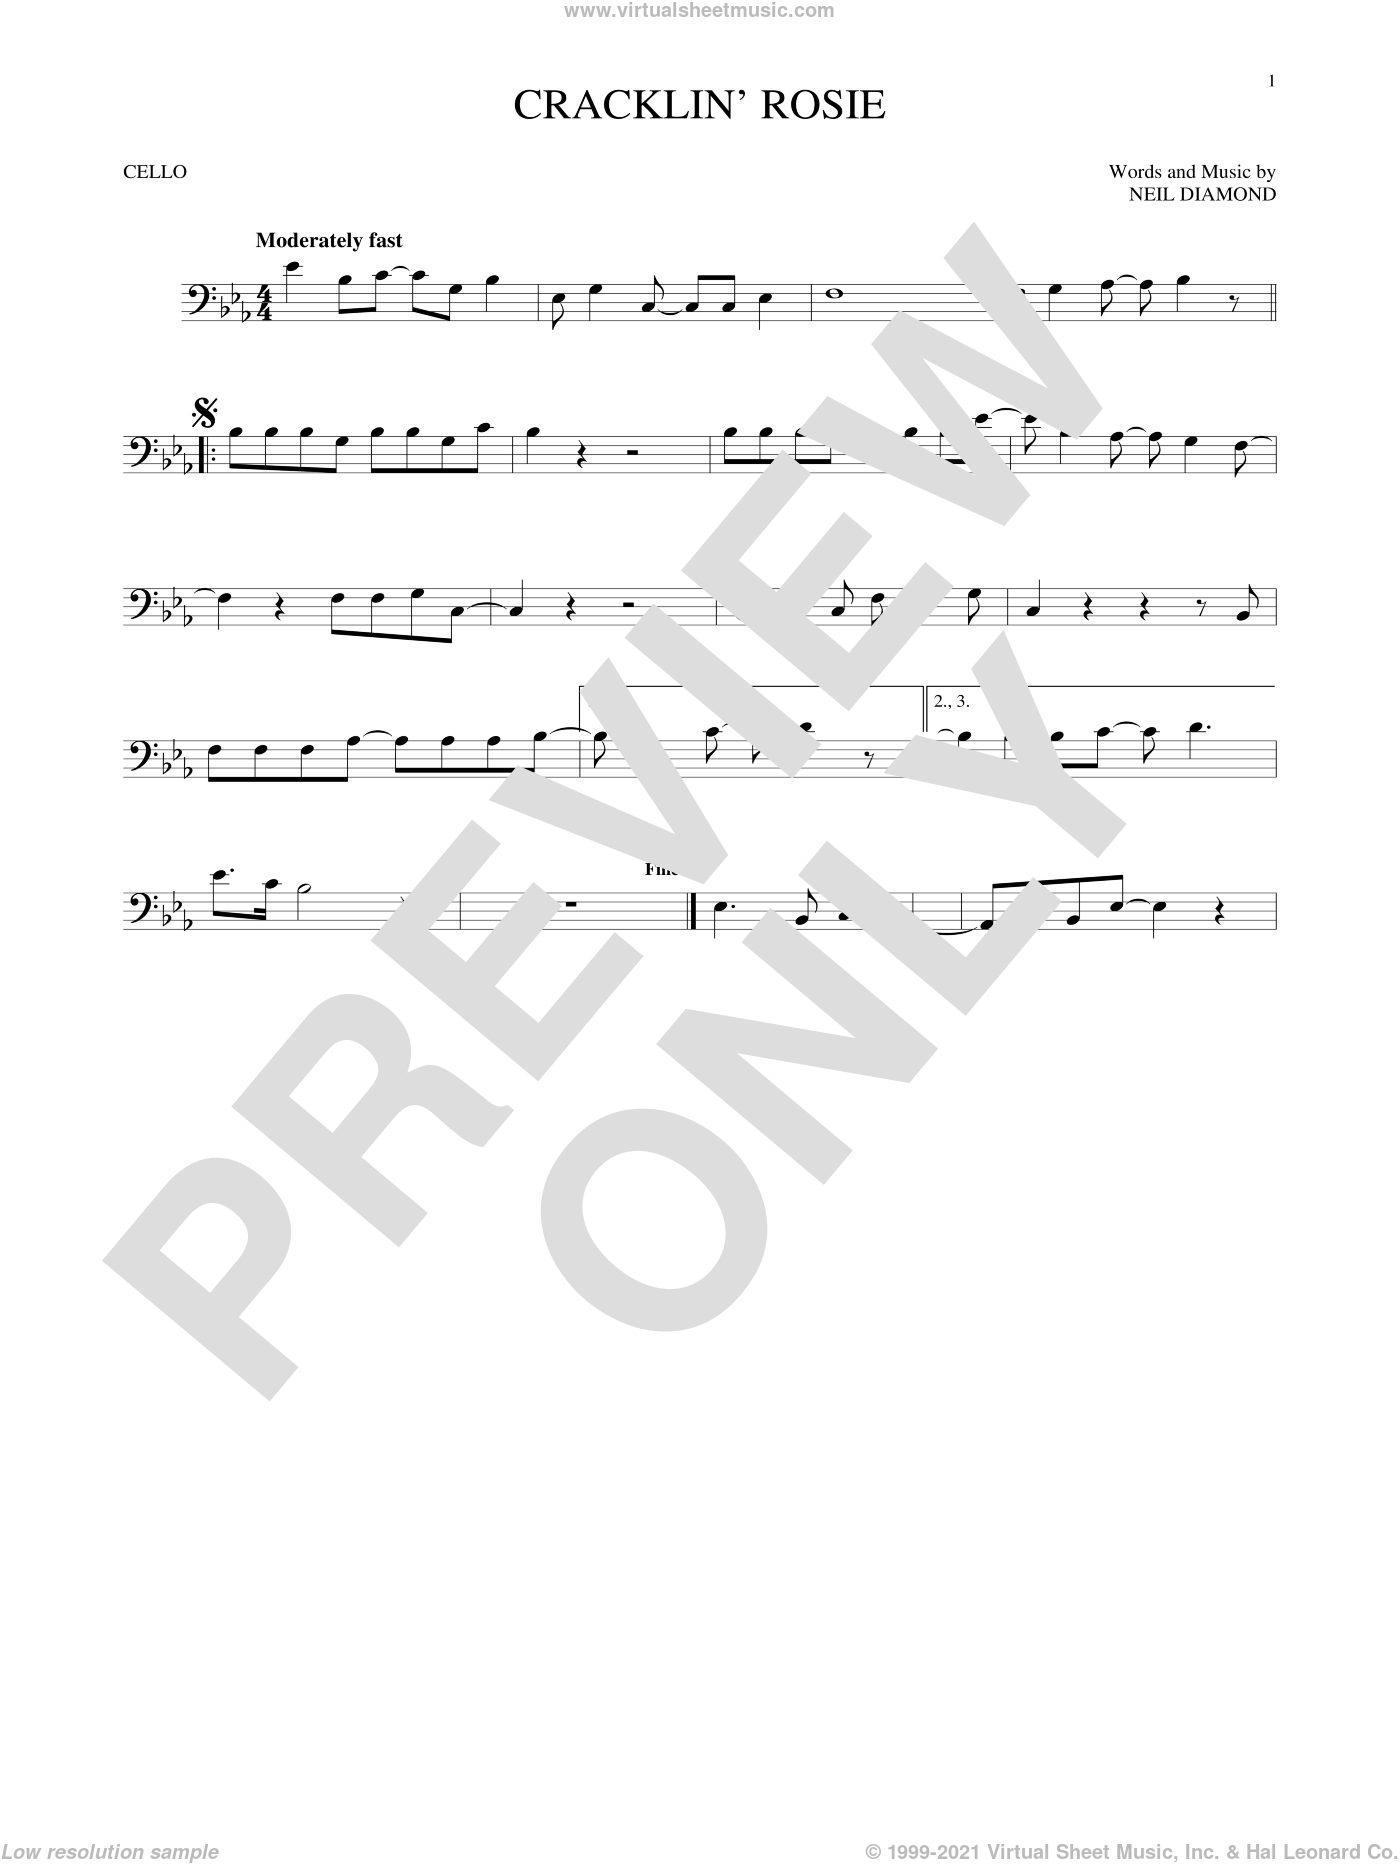 Cracklin' Rosie sheet music for cello solo by Neil Diamond, intermediate skill level